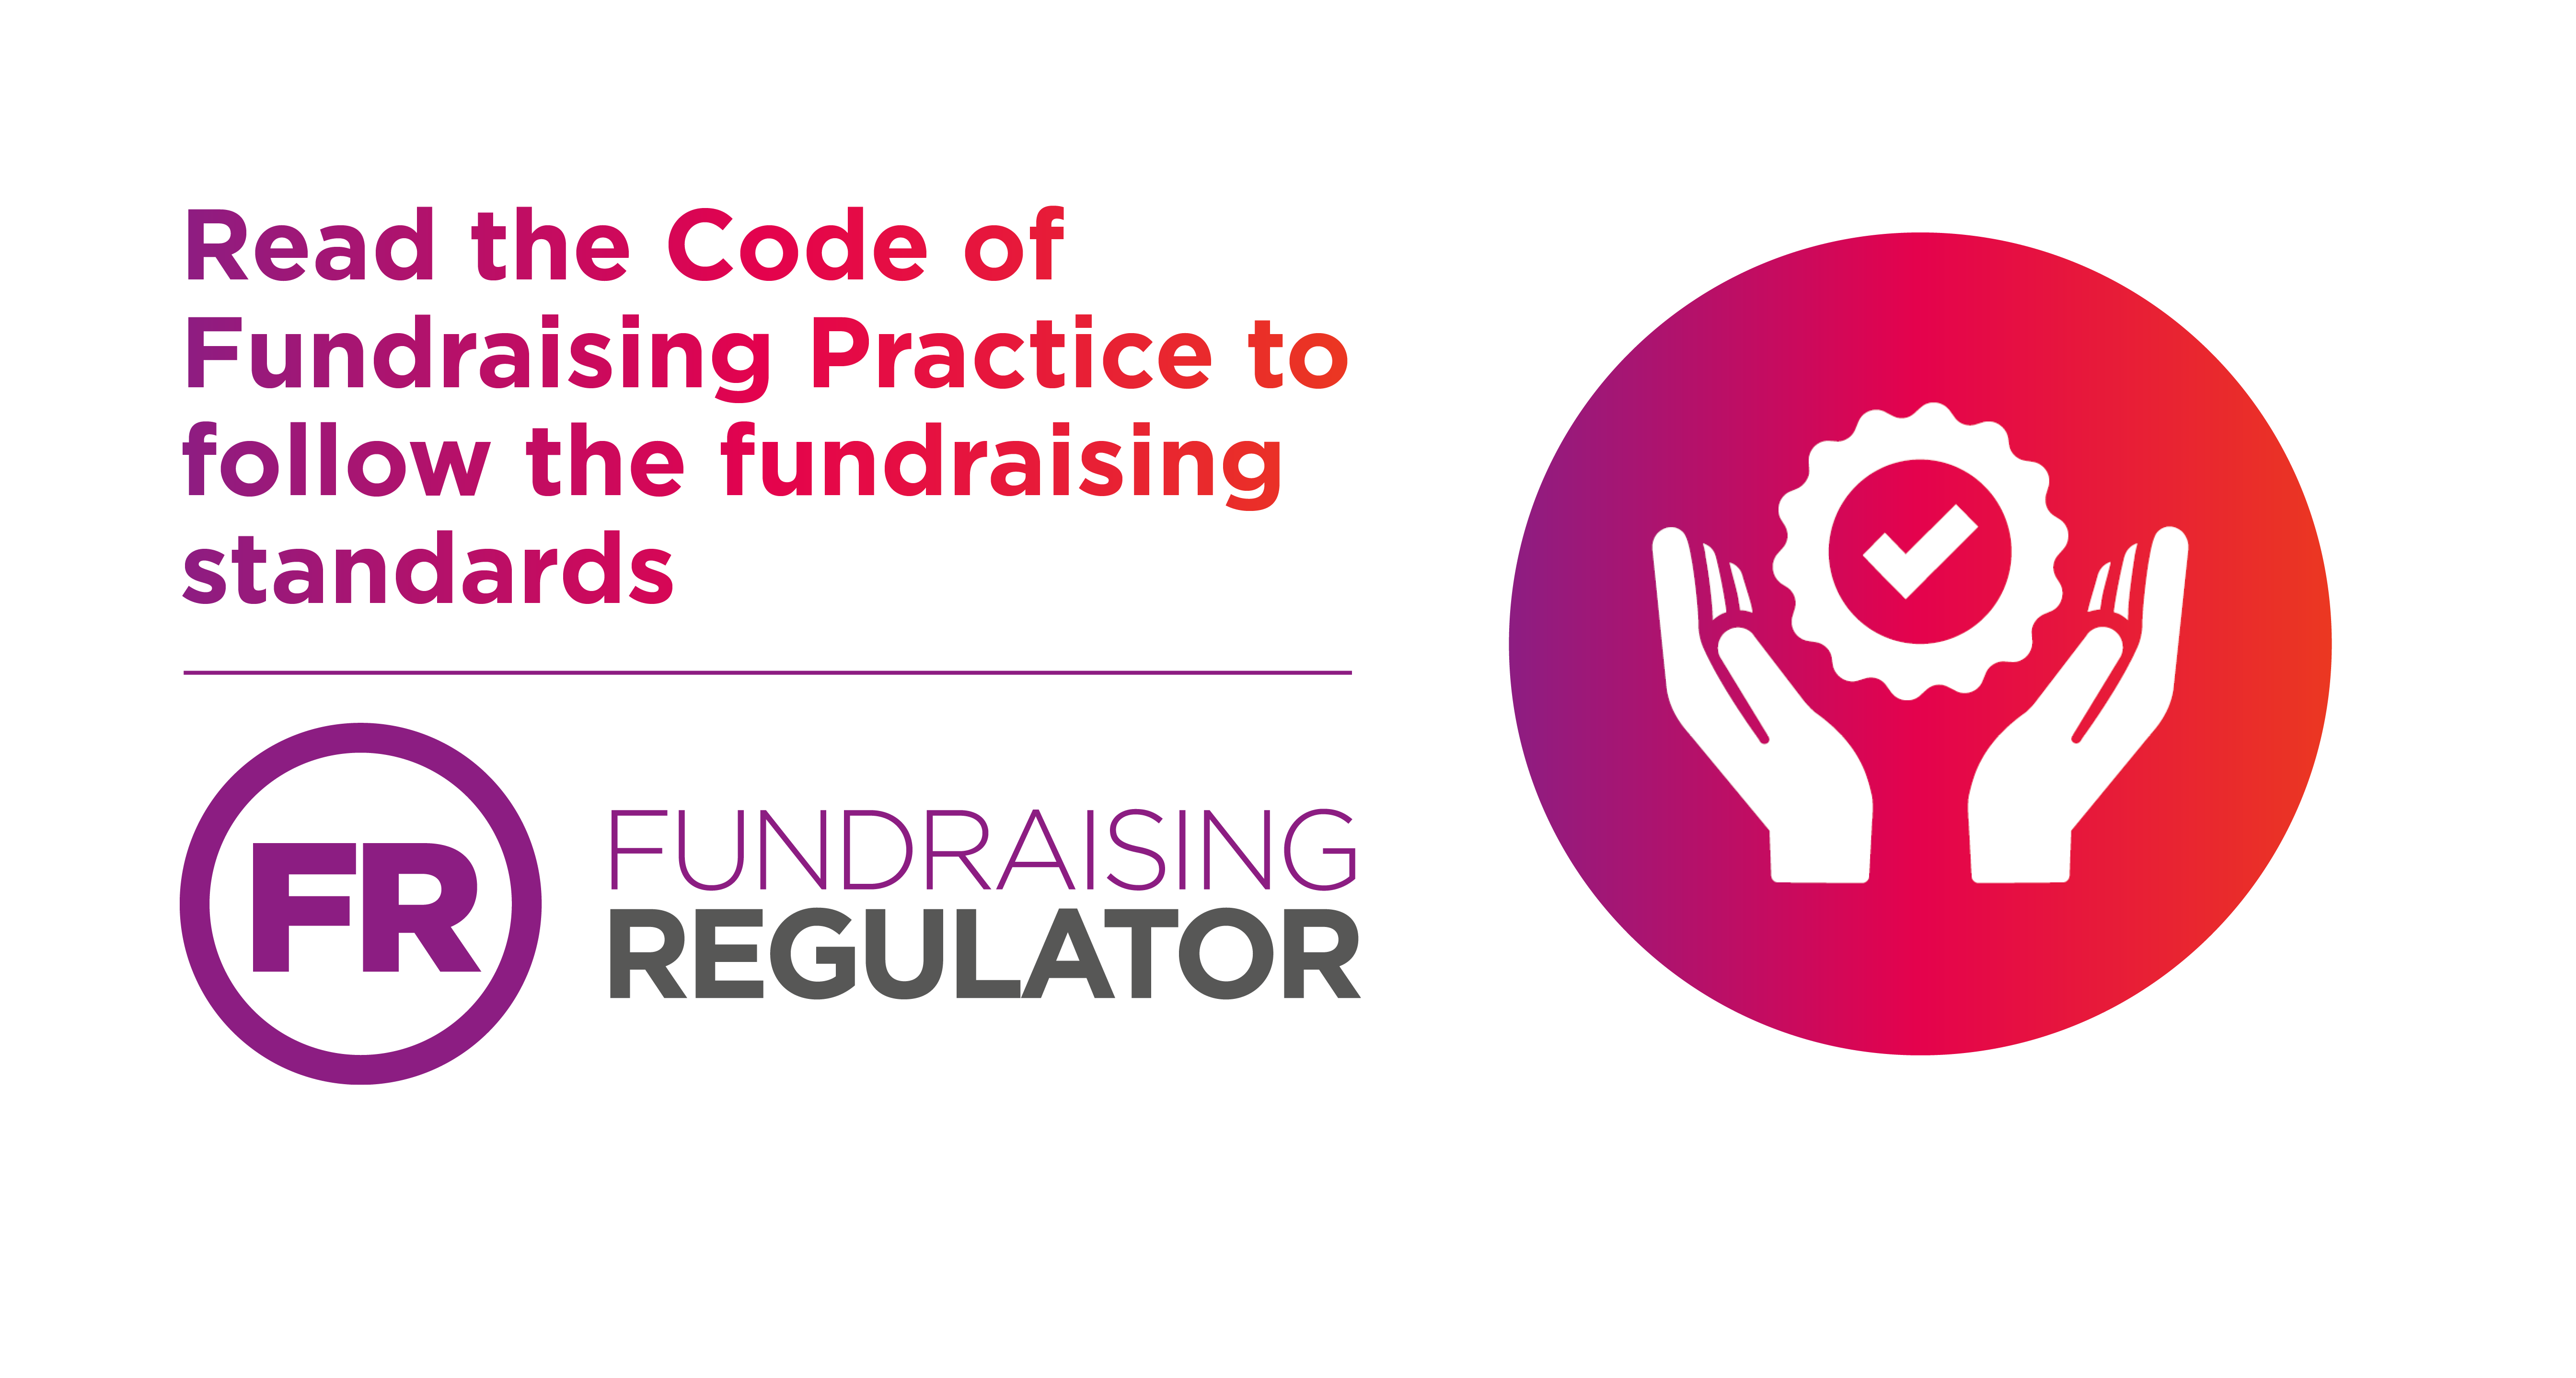 Read the Code of Fundraising Practice to follow the fundraising standards